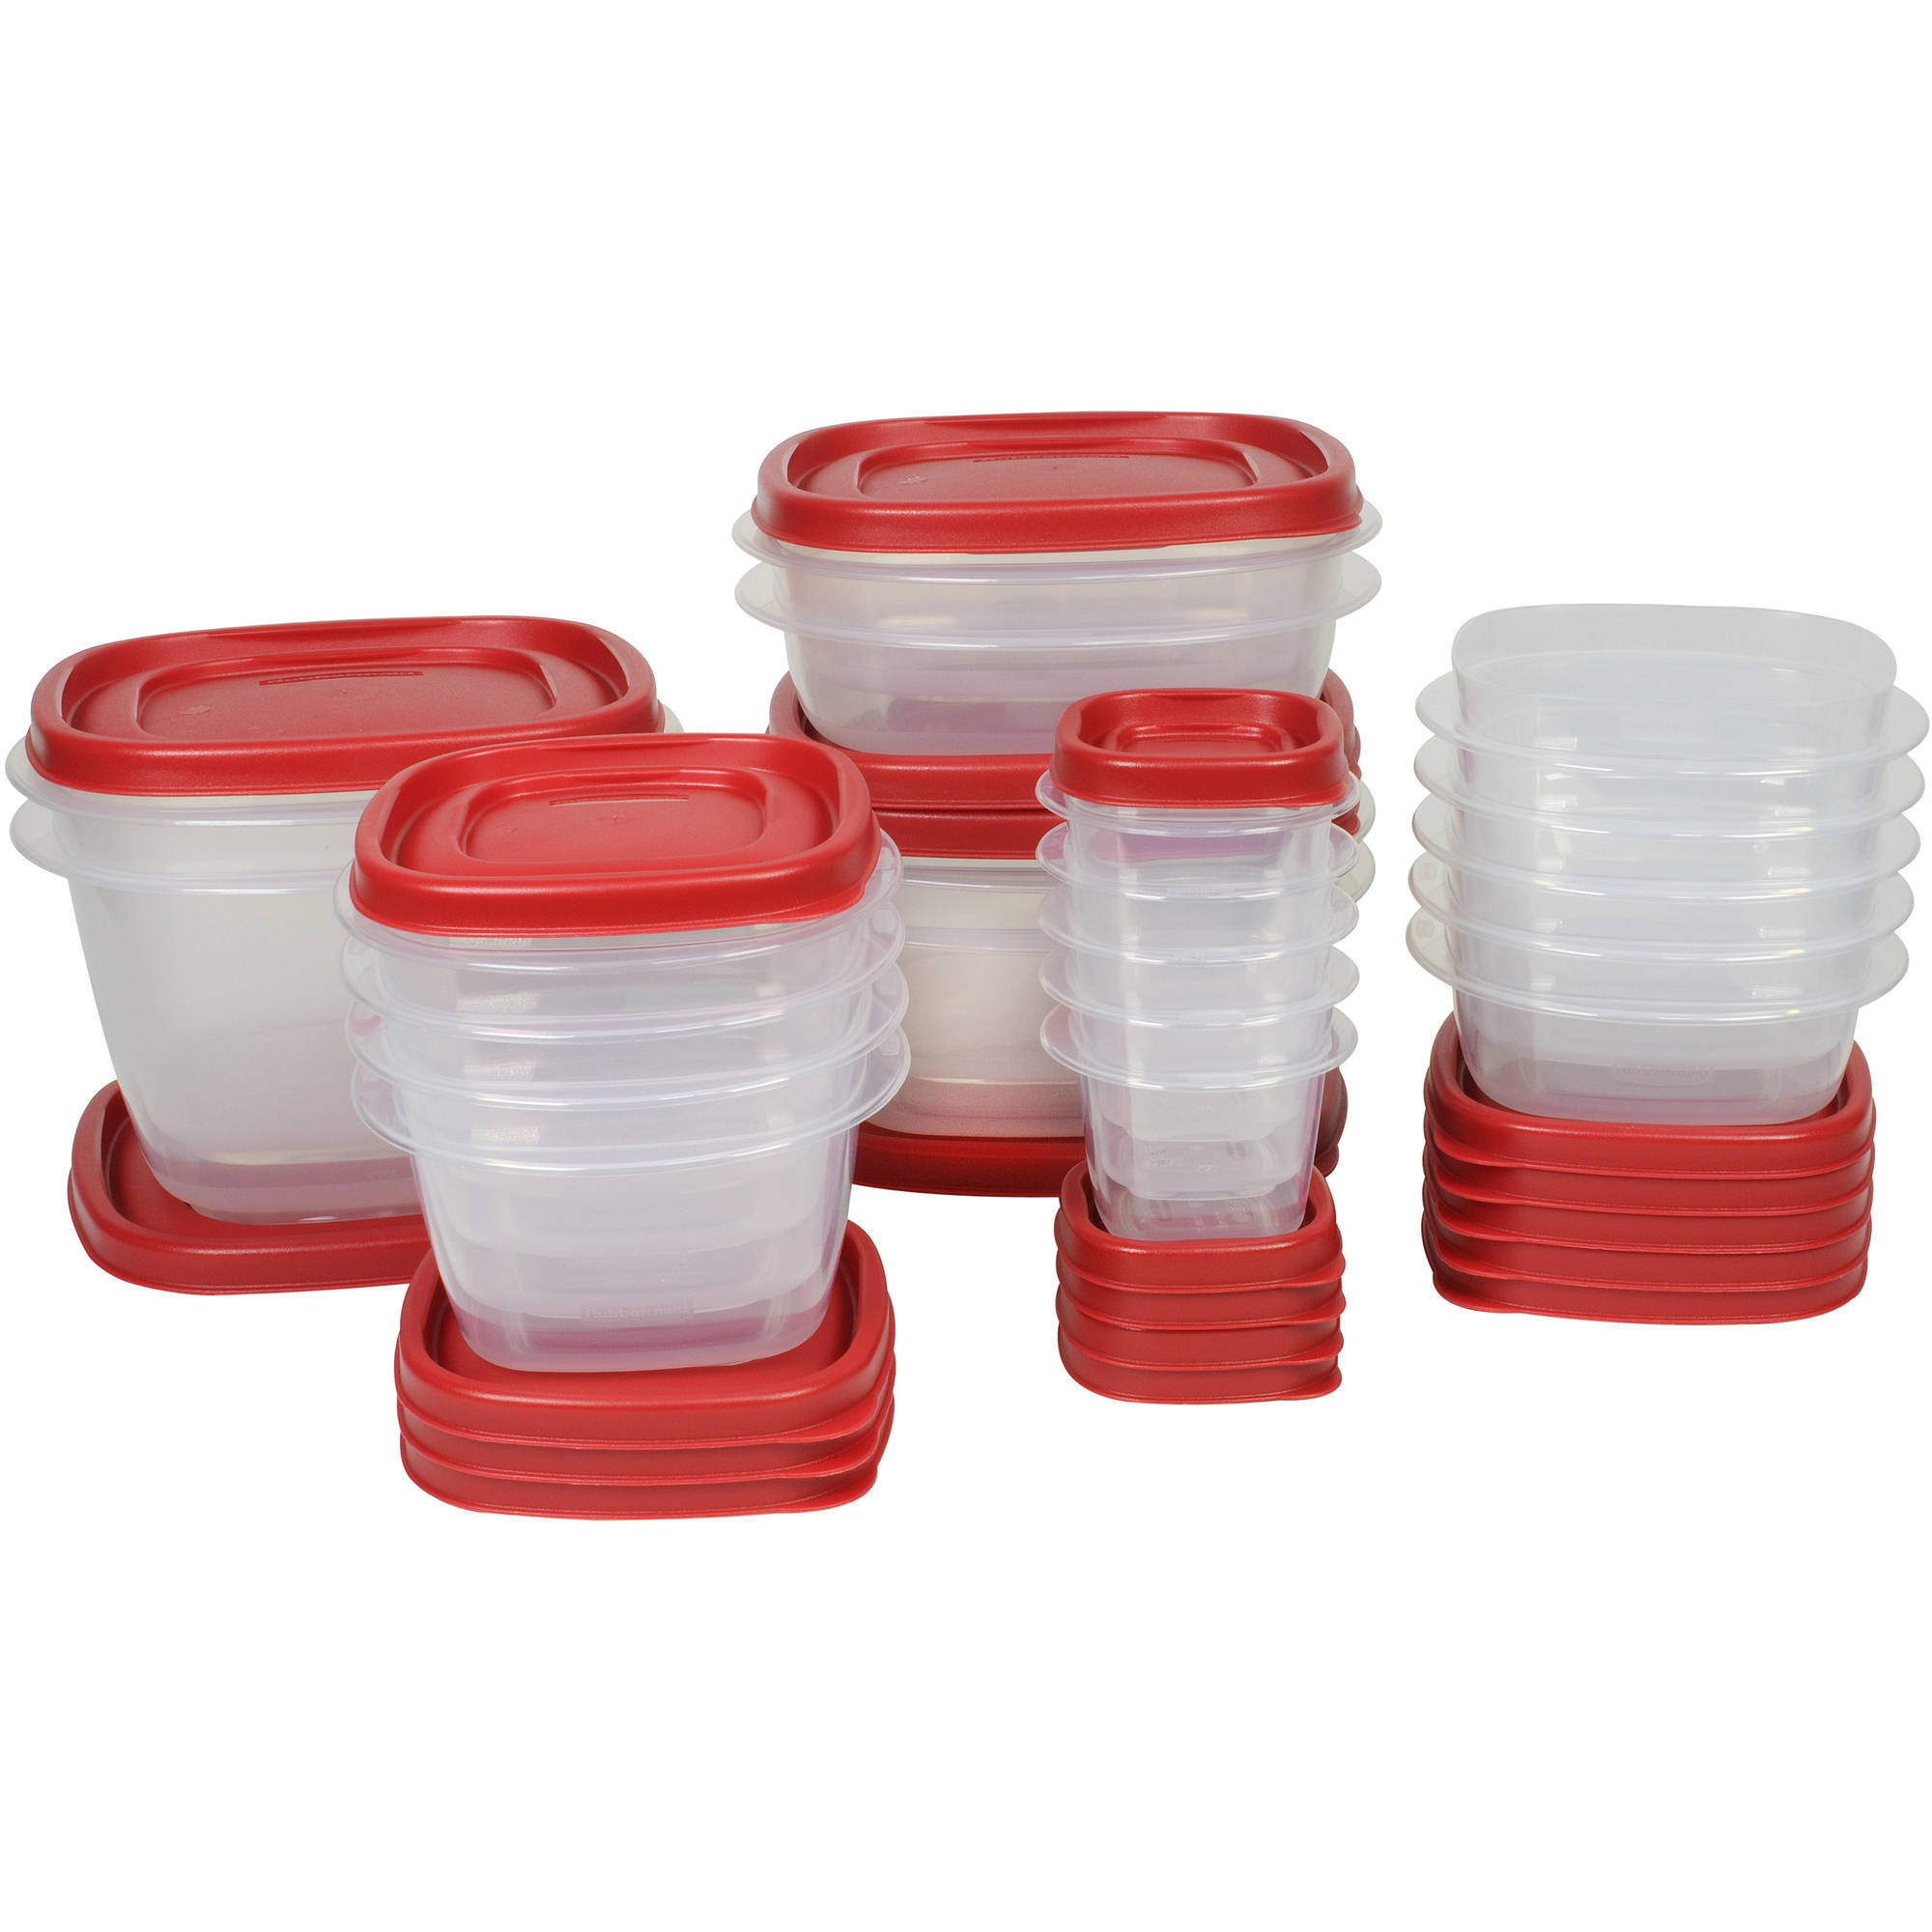 Rubbermaid Easy Find Lids Food Storage Container, 40-Piece Set, Red